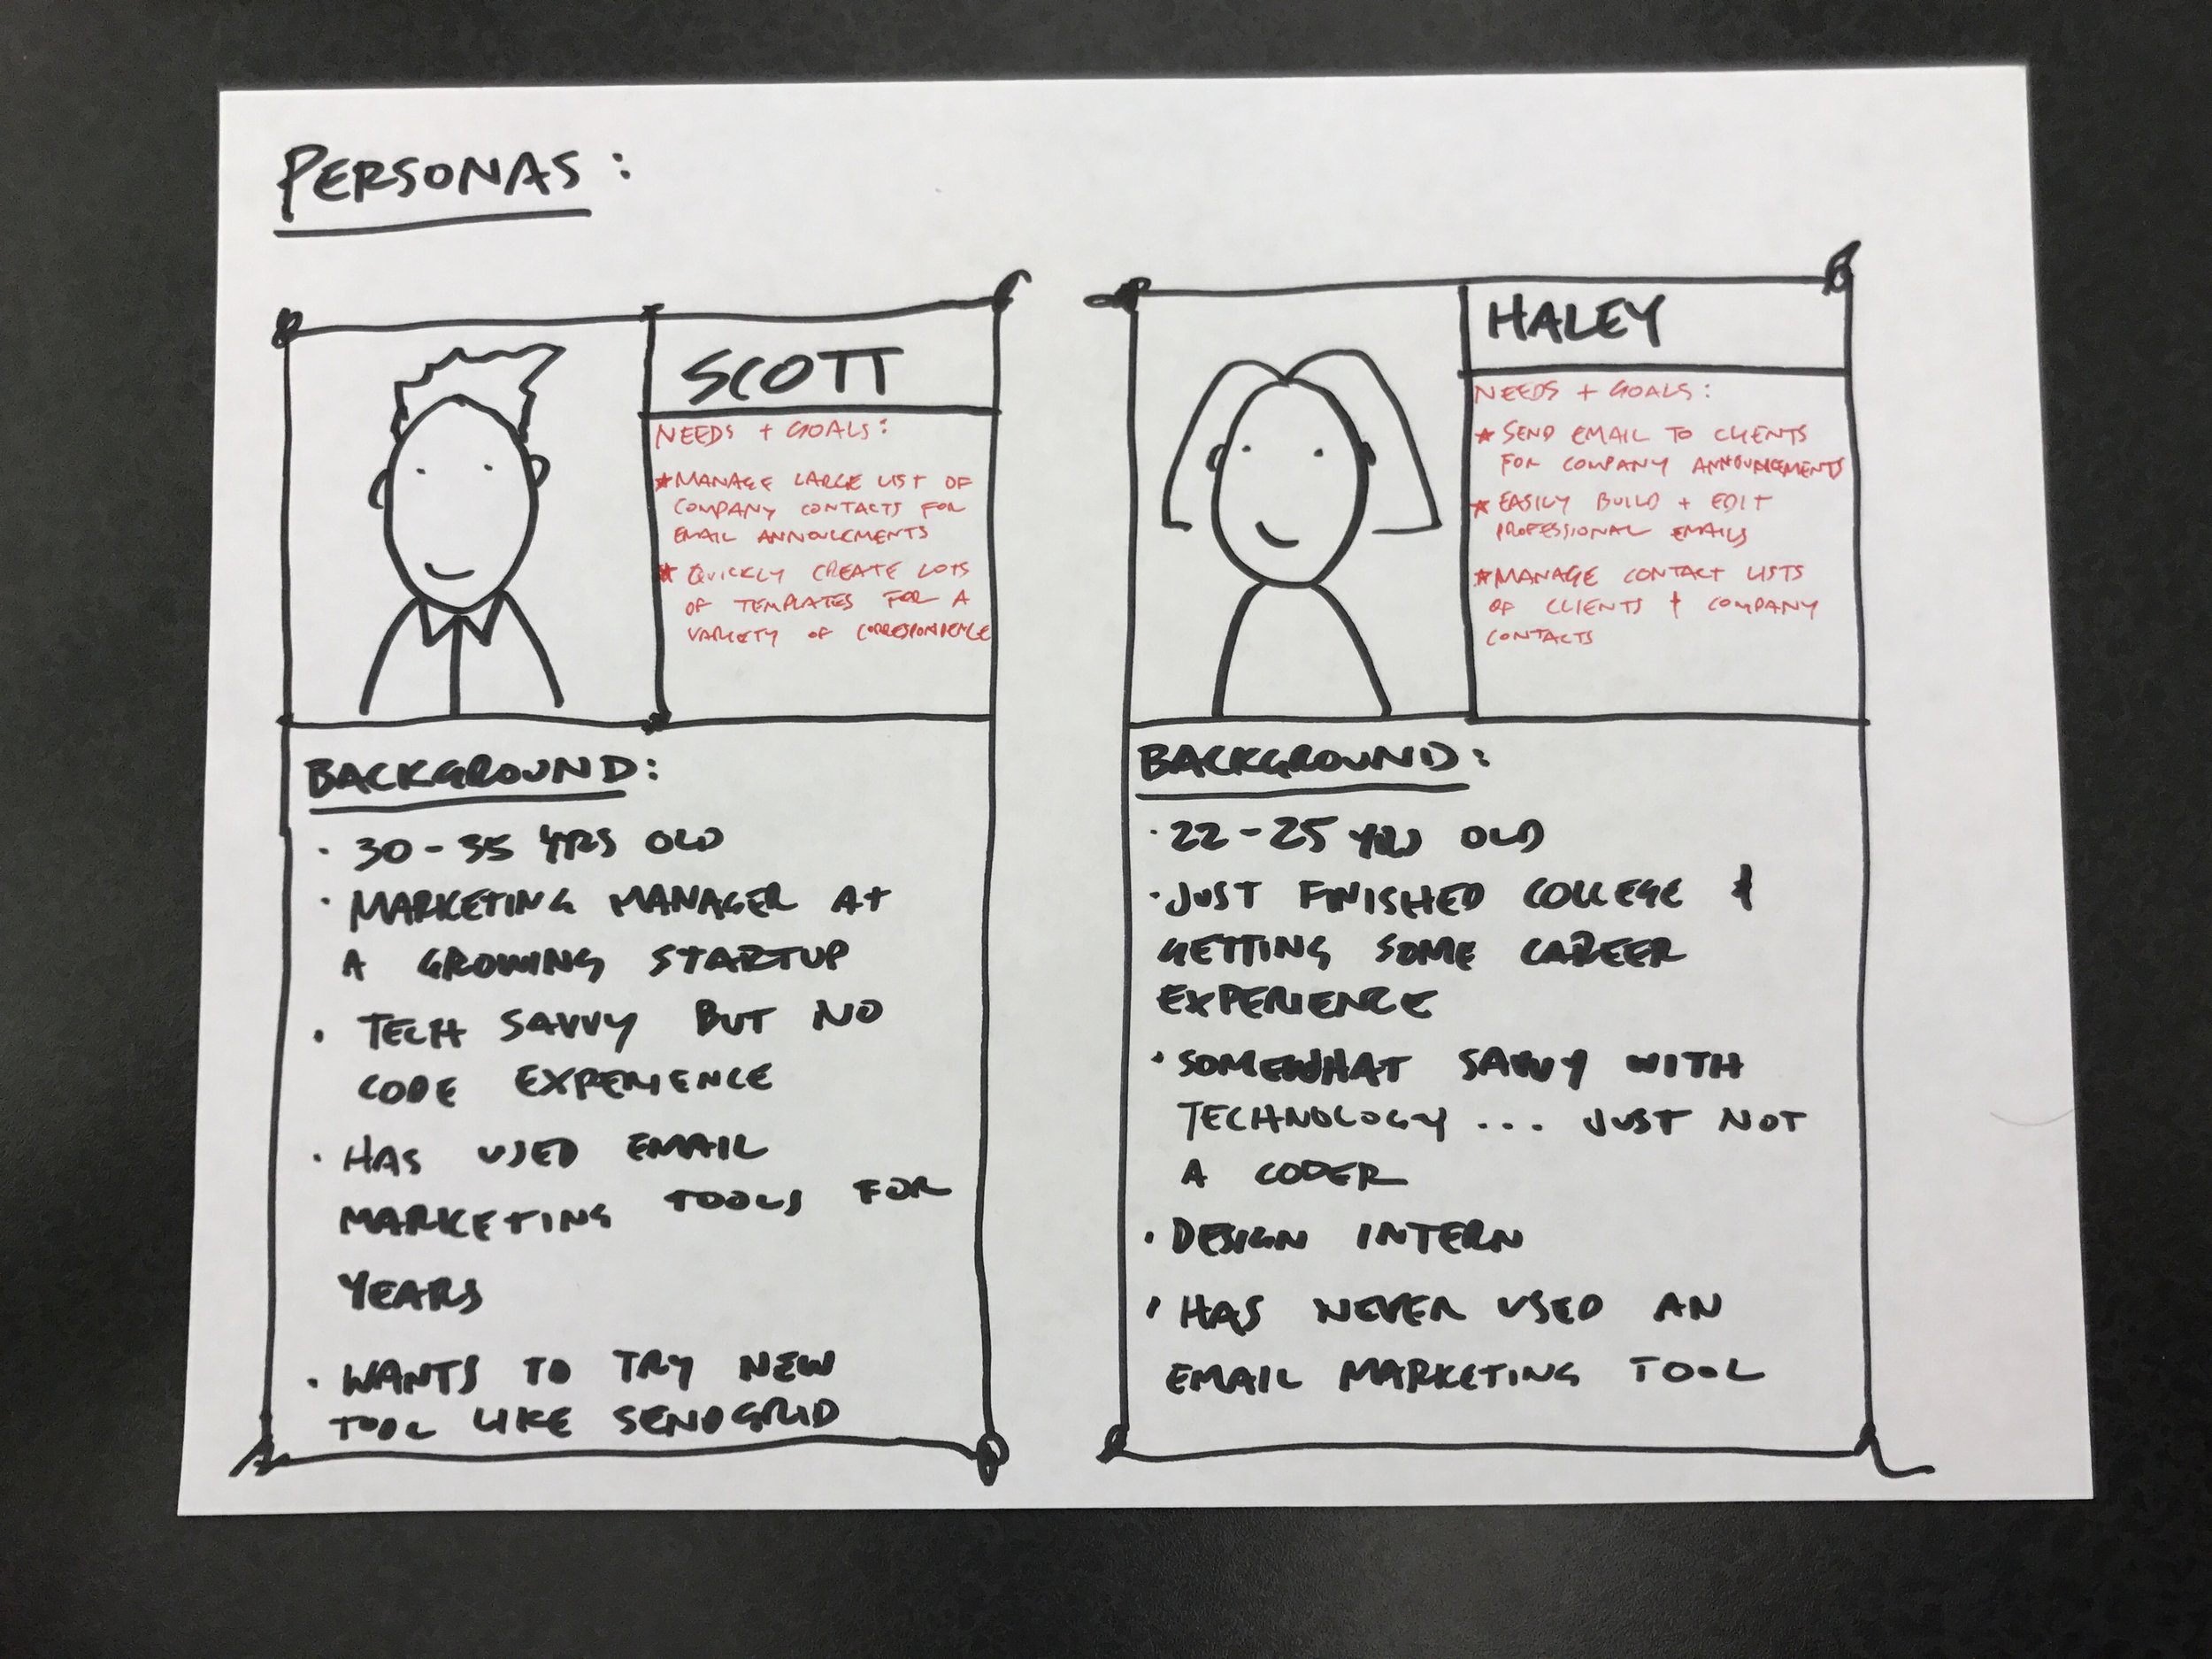 PERSONAS: Gives me some context to work from in order to ground my solutions to the customer.